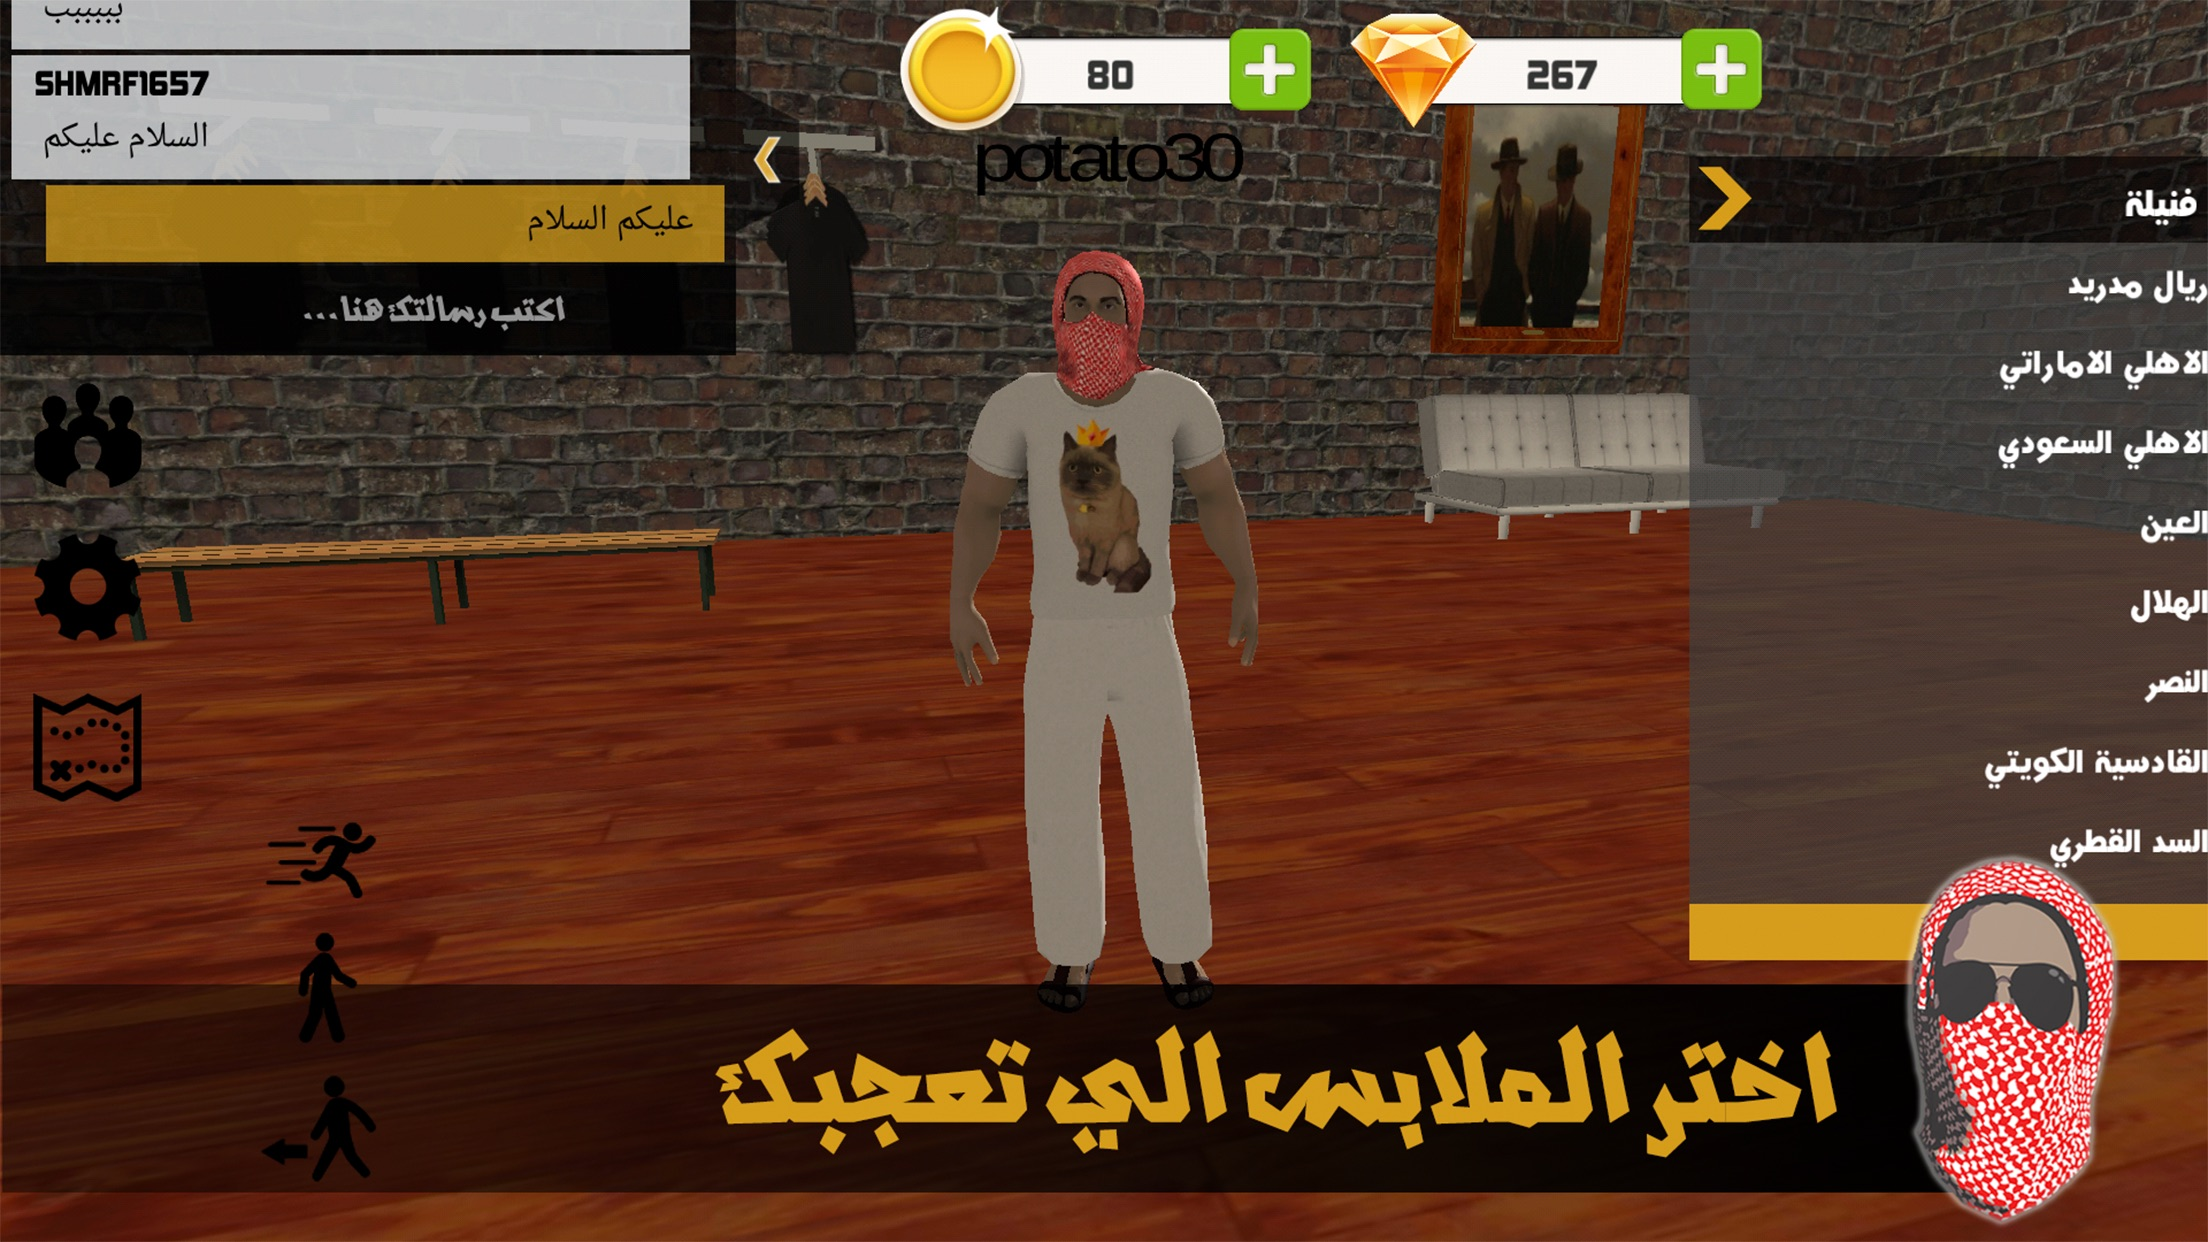 هجوله - اون لاين Screenshot